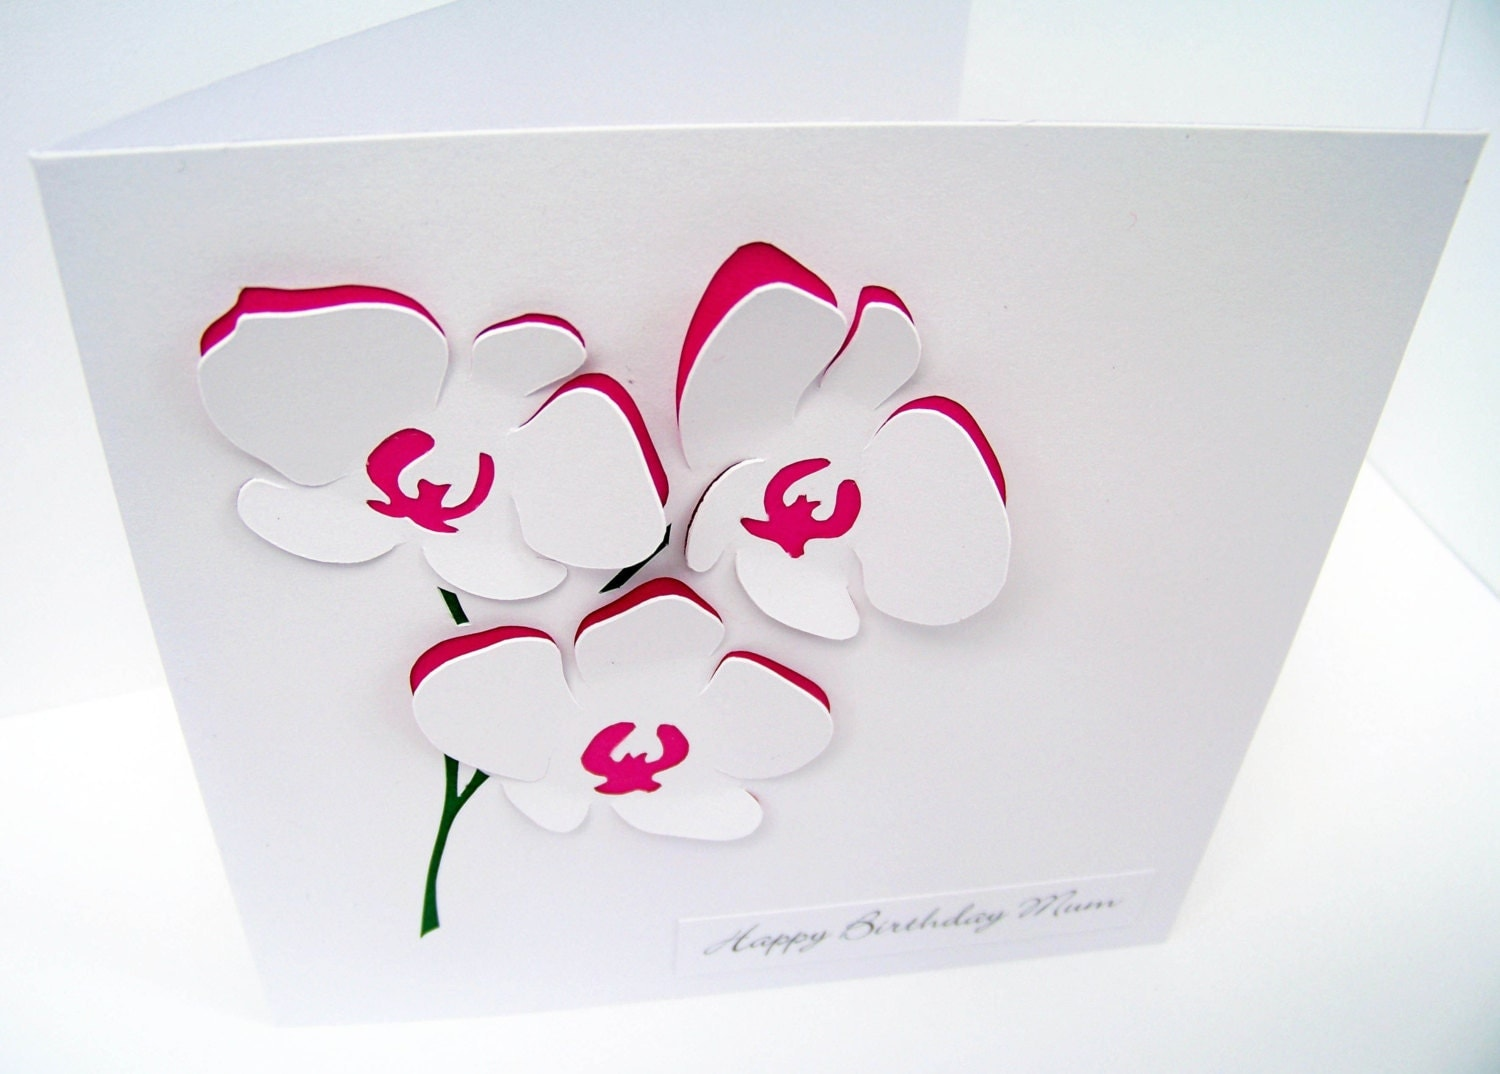 Orchid card flowers personalised card mothers day zoom dhlflorist Choice Image